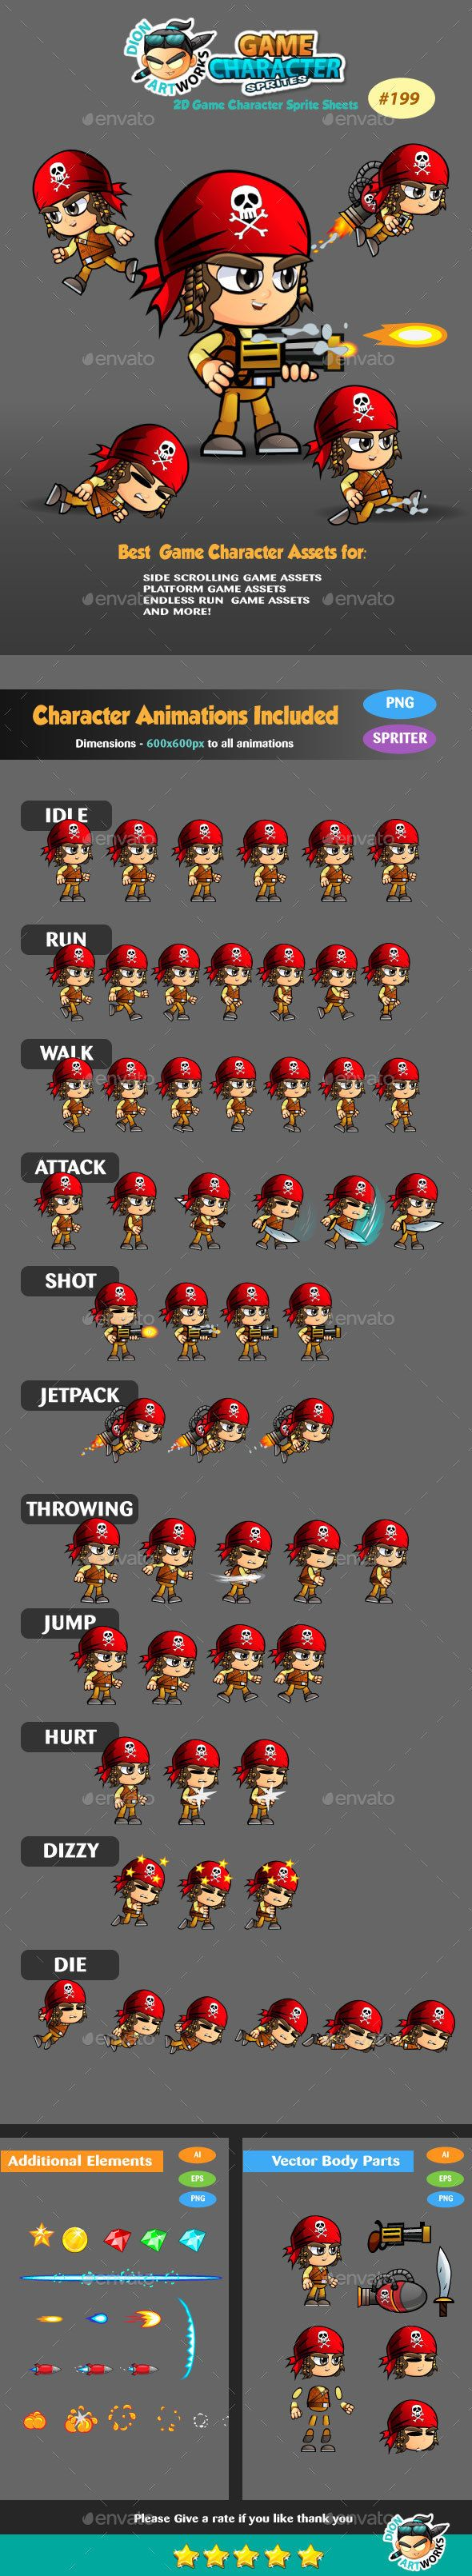 Pirate Boy 2D Game Character Sprites 199 — Vector EPS #main character #sprite sheet • Available here → https://graphicriver.net/item/pirate-boy-2d-game-character-sprites-199/15031605?ref=pxcr